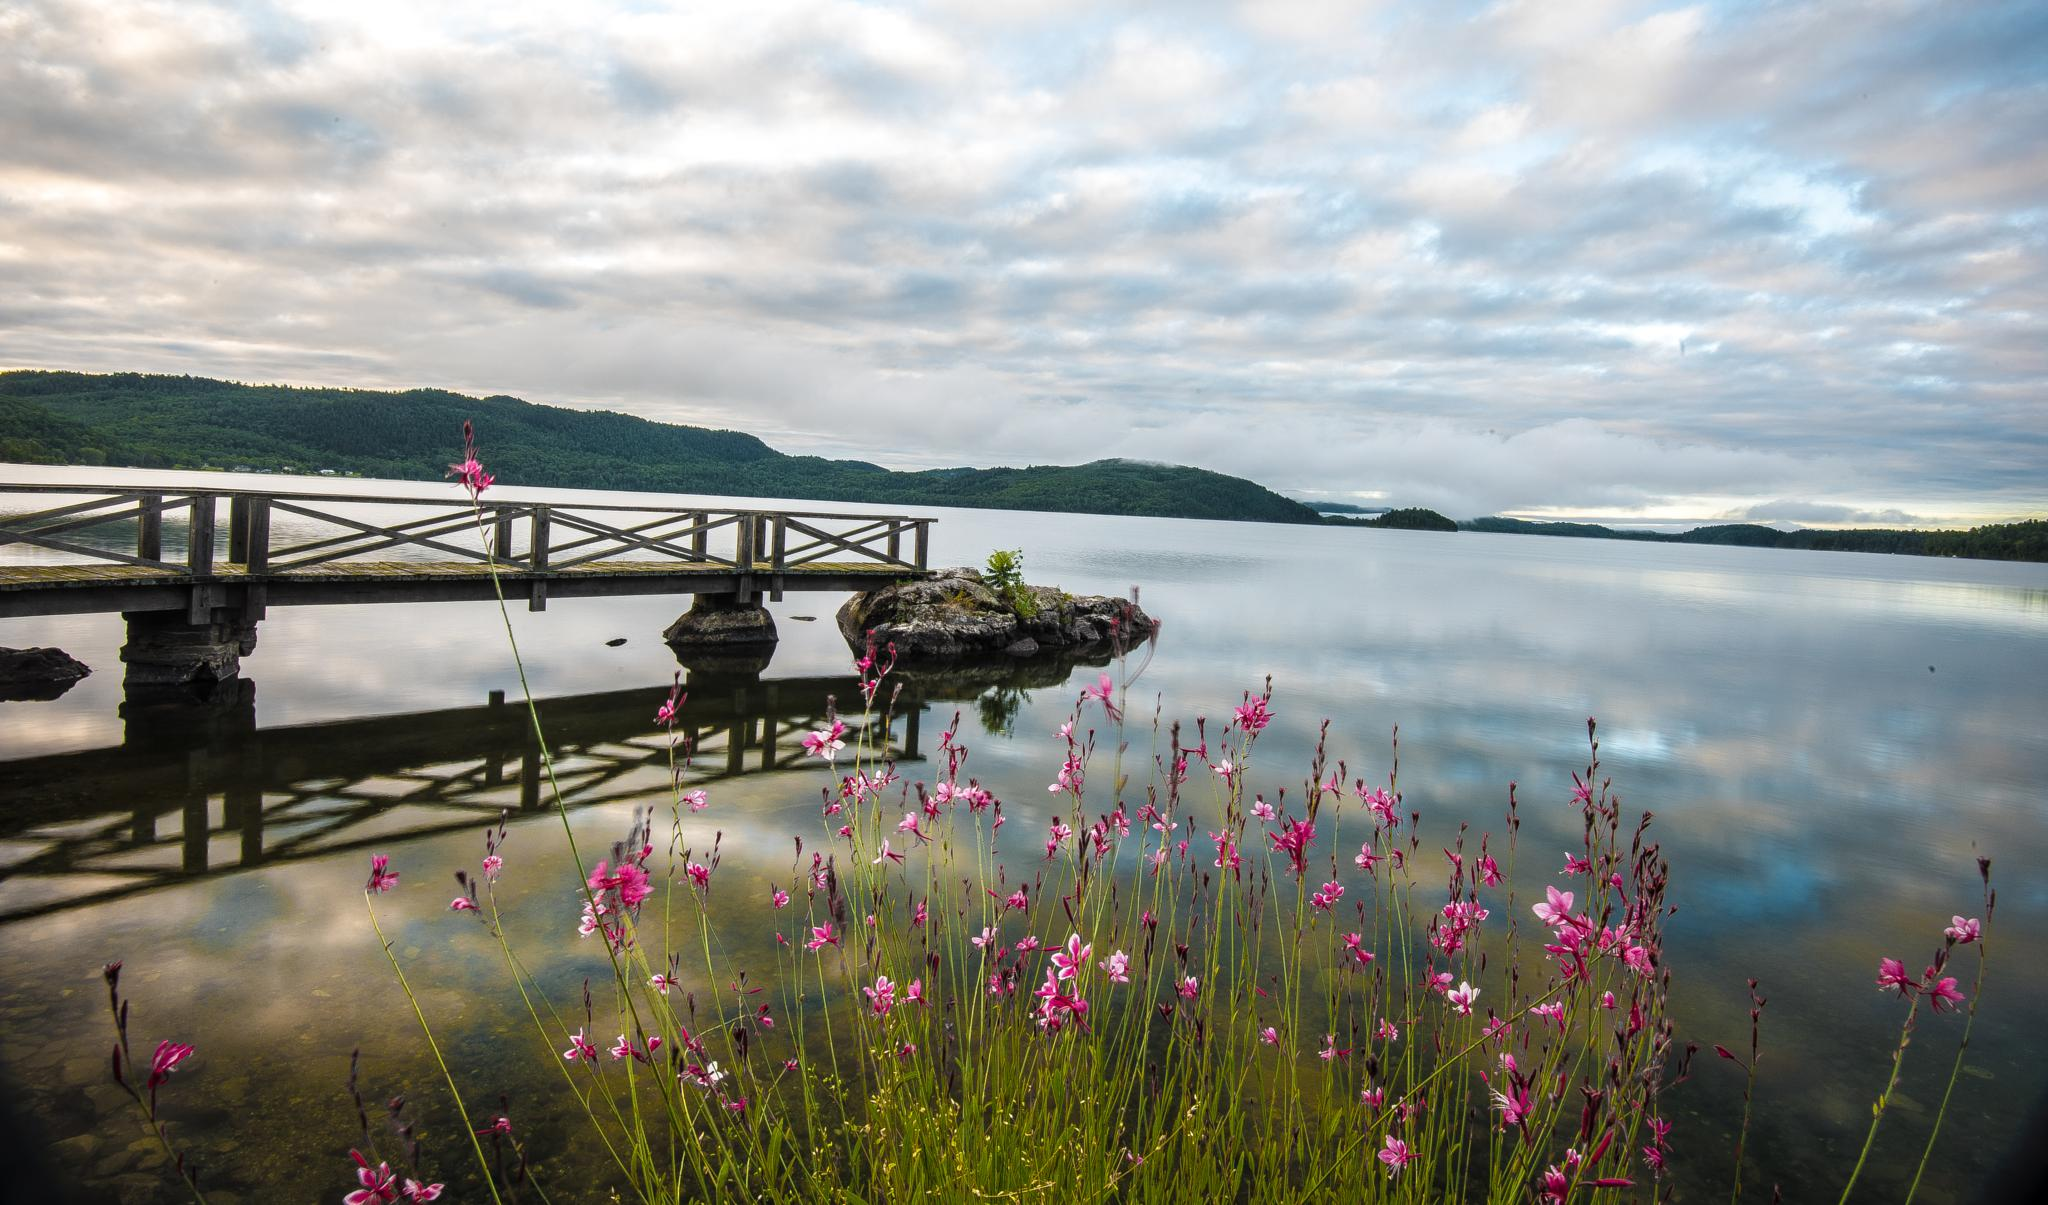 Water Flowers at the Shore by SAFIRE PHOTO